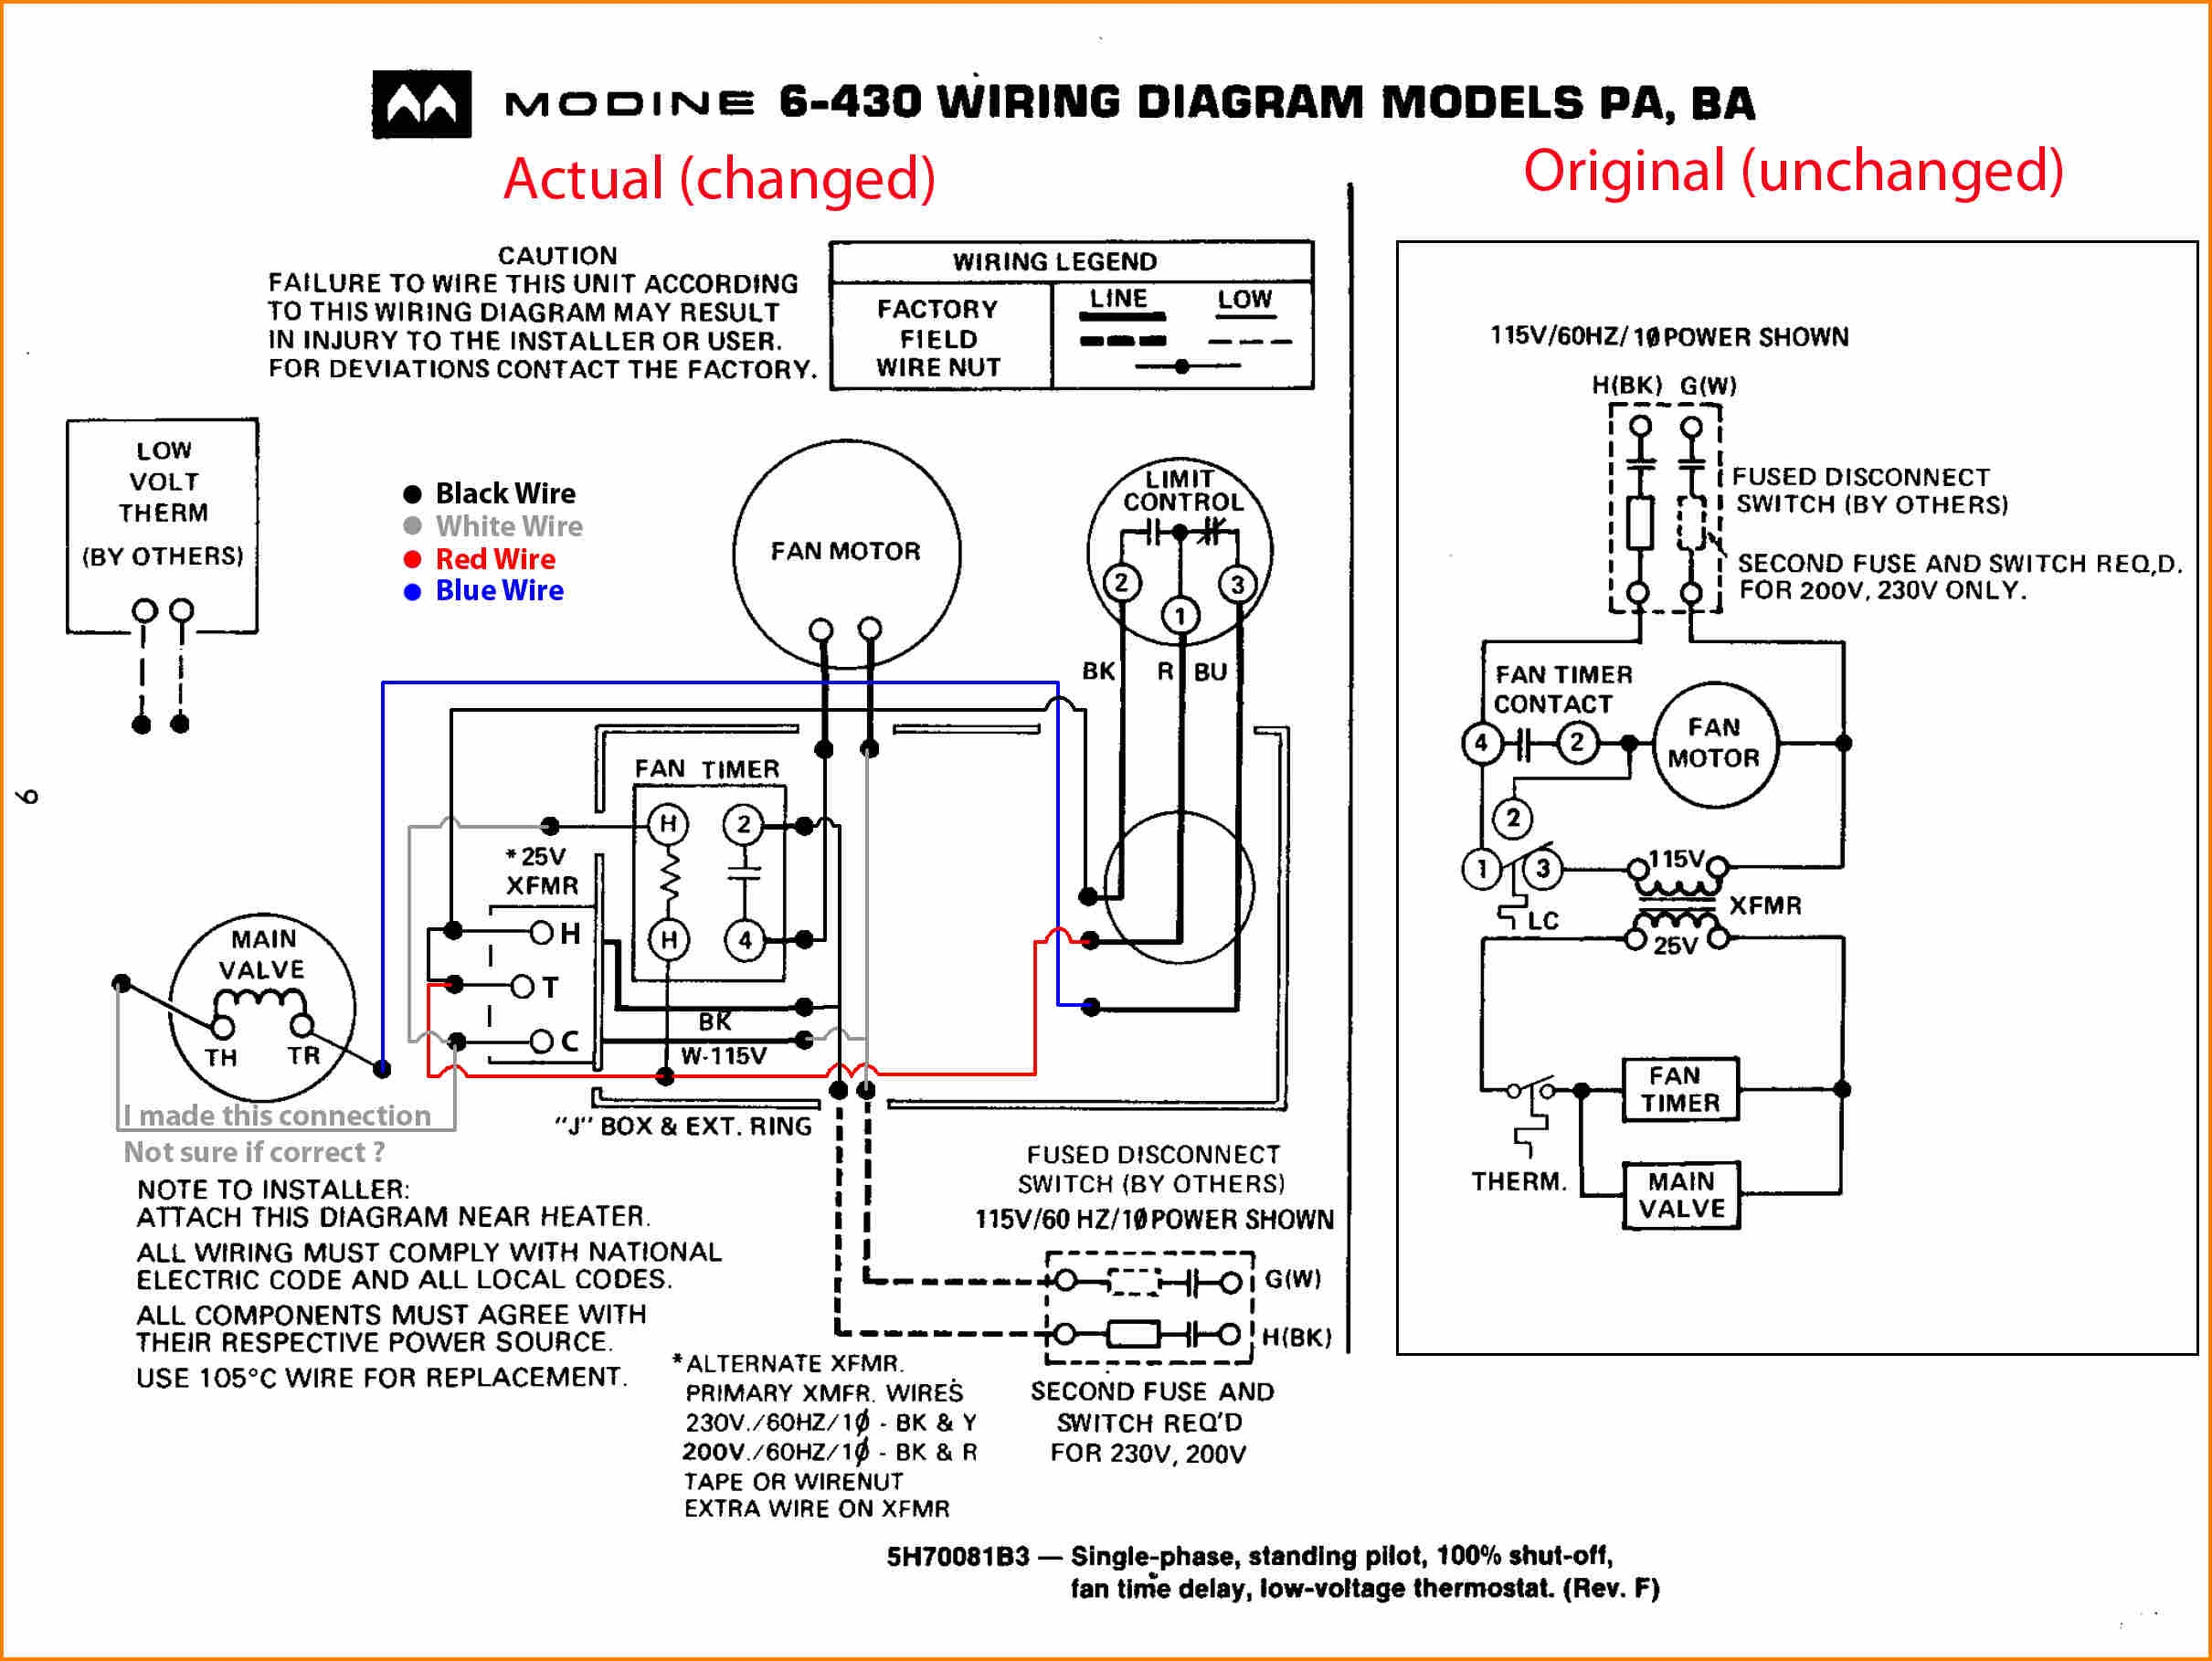 Furnace Motor Wiring Diagram